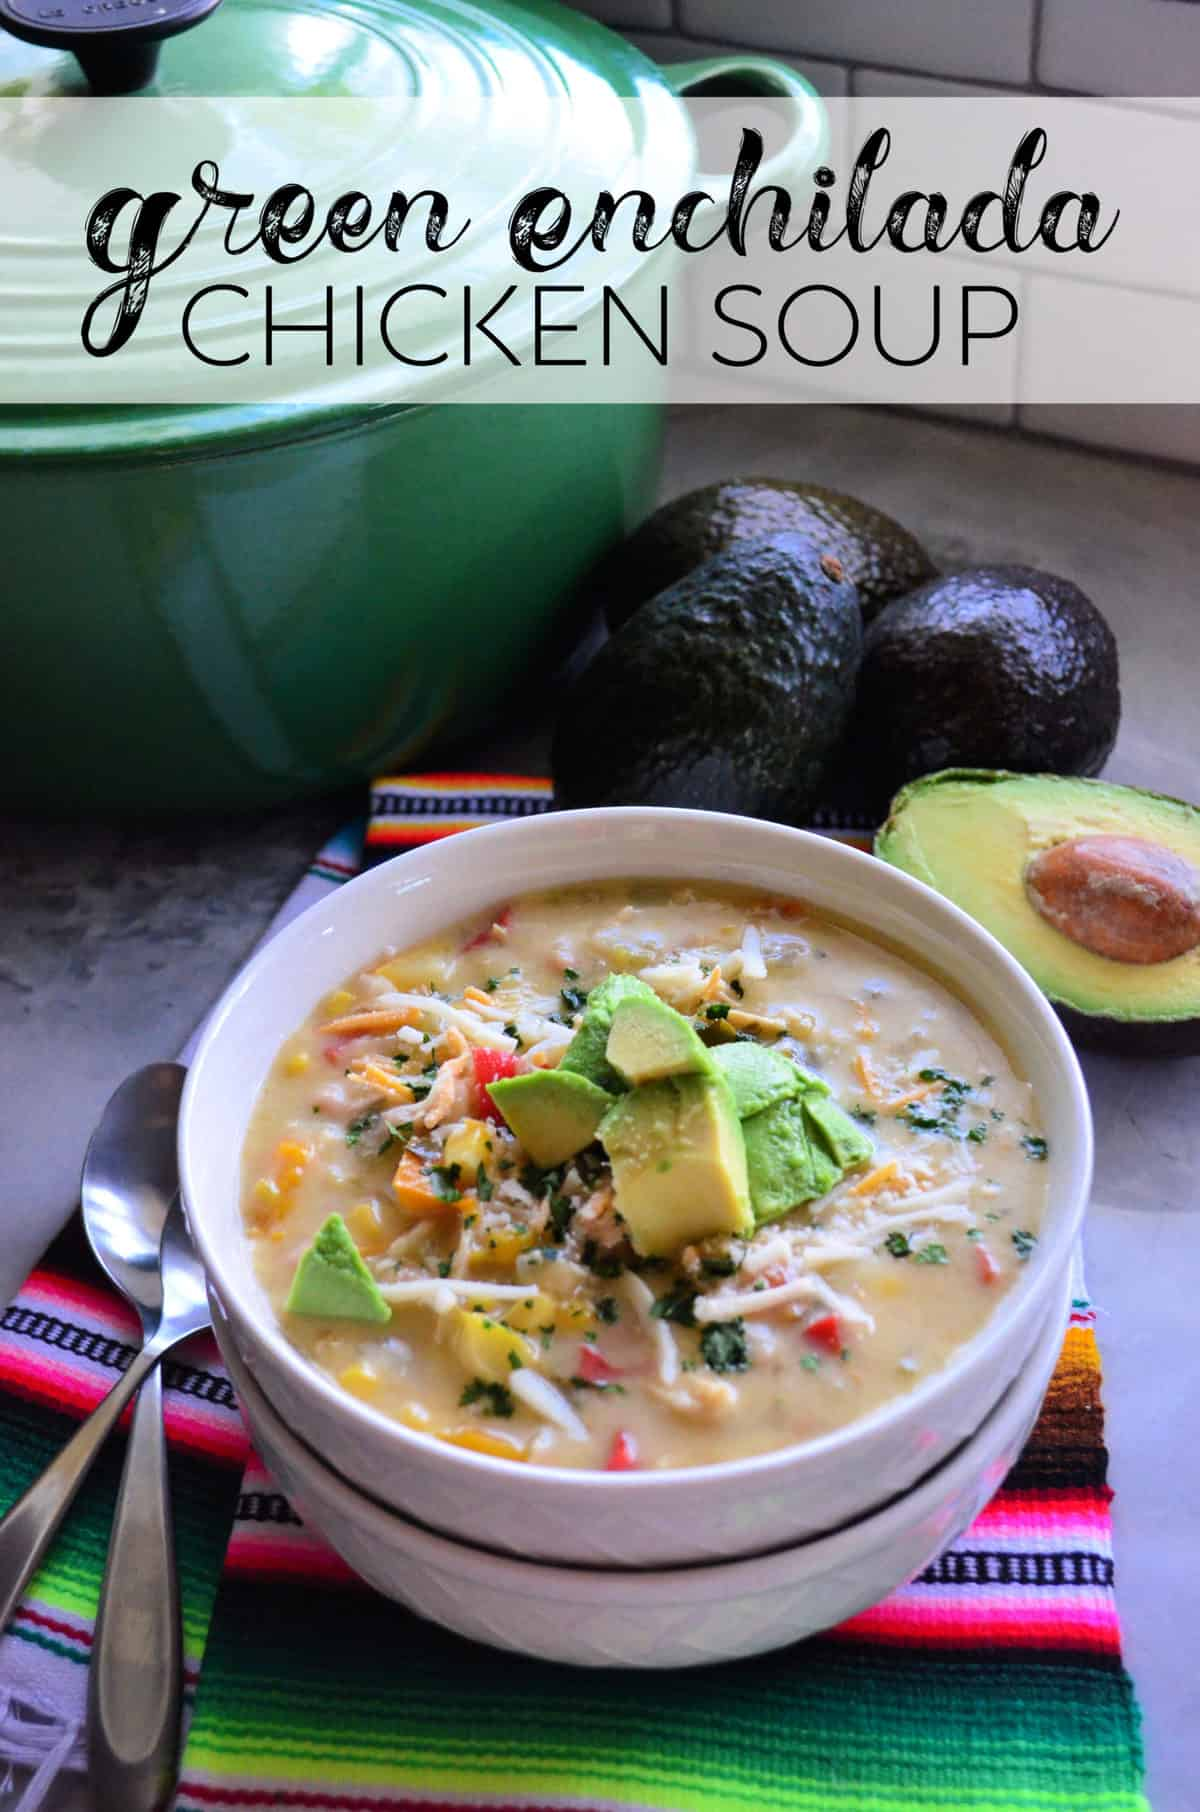 Green Enchilada Chicken Soup in bowl topped with cheese and avocado with title text.